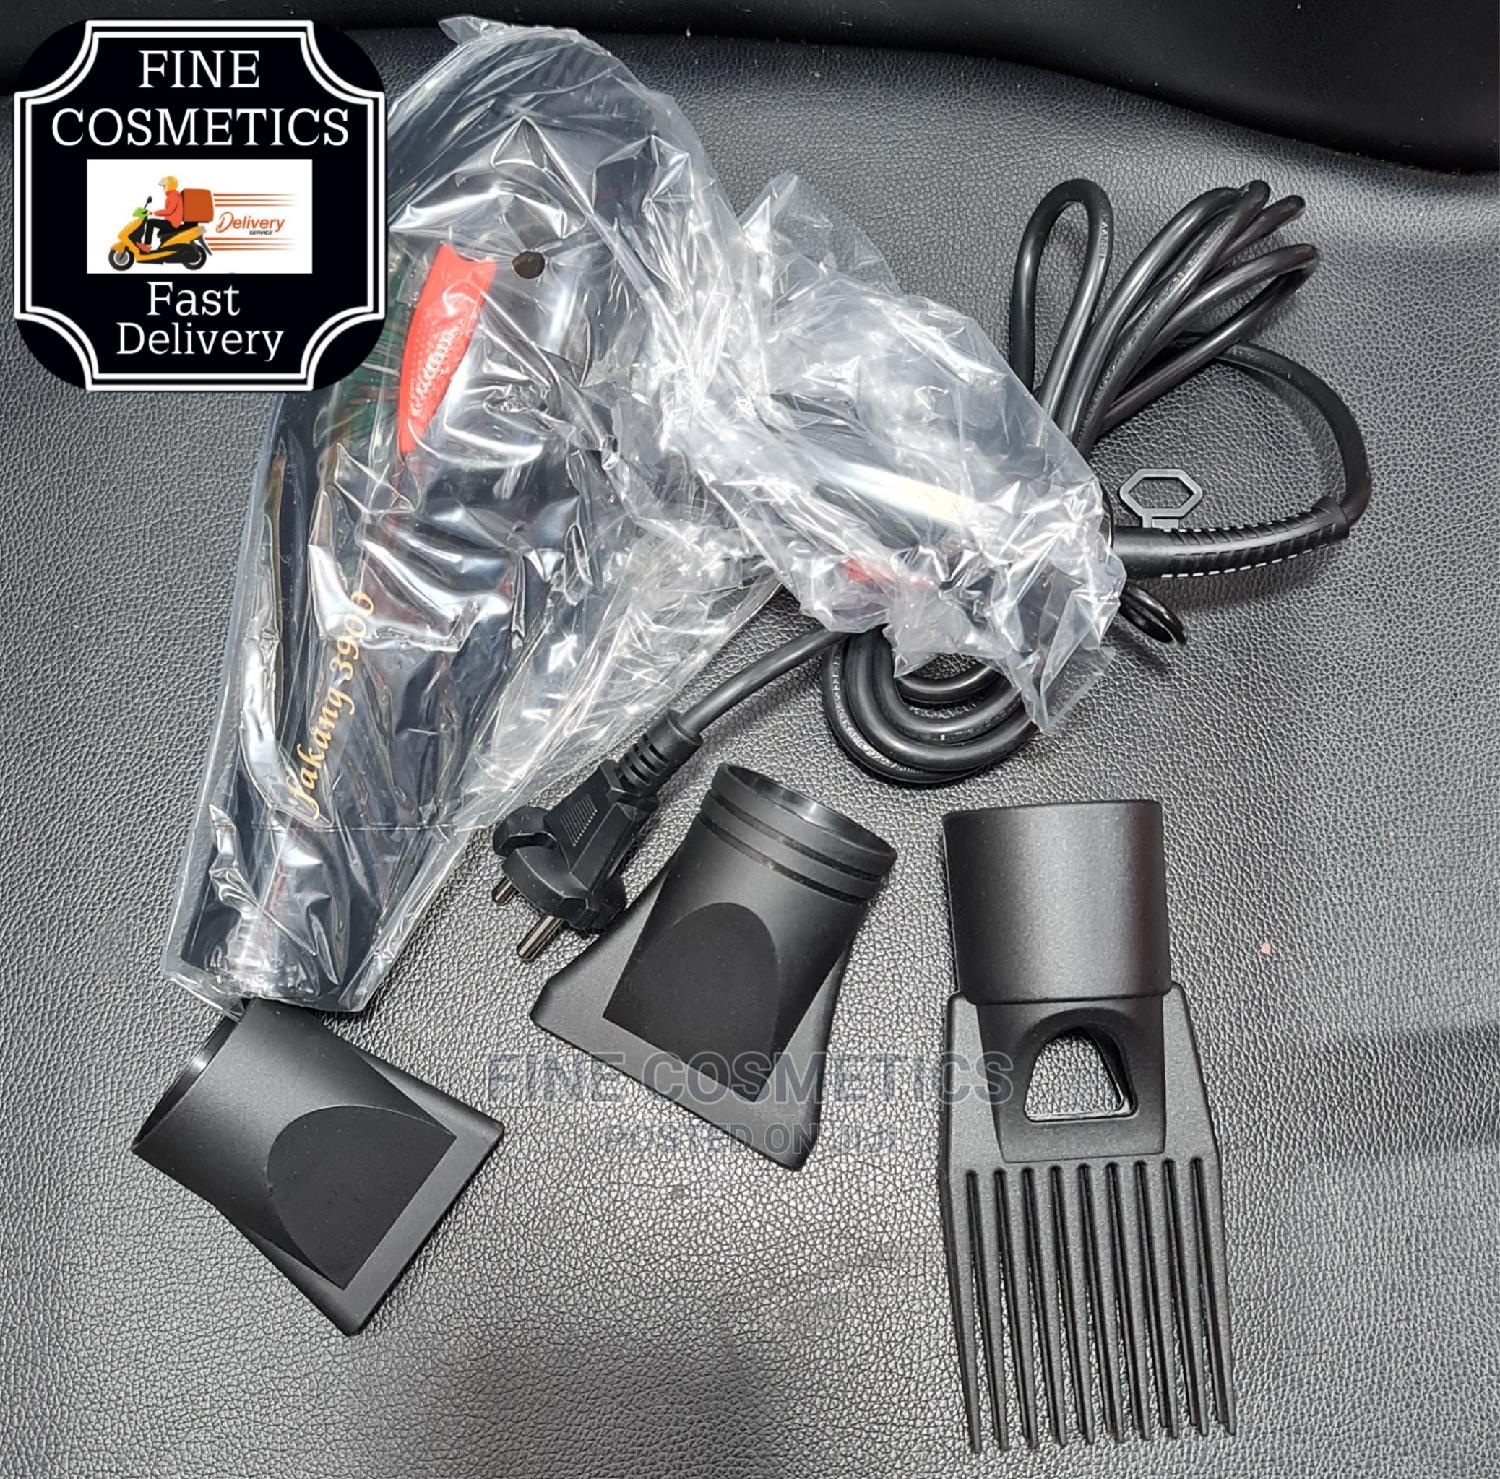 New Fakang High-Power Hot+Cold Air Hand Hair Dryer/Blower   Tools & Accessories for sale in Kampala, Uganda